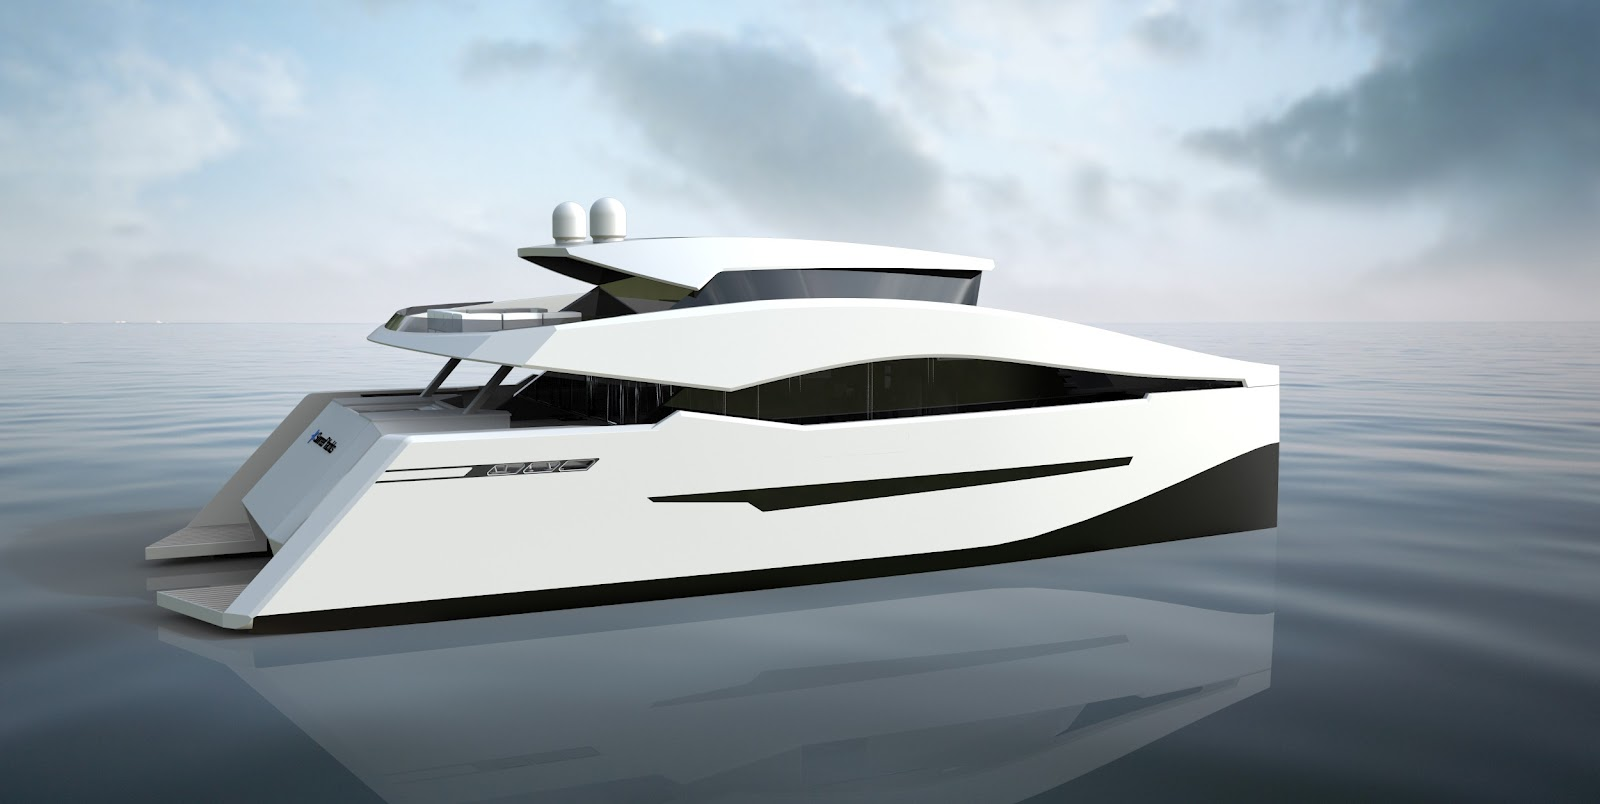 Power catamaran designs -  Motoryacht Clientele Who Will Now Be Able To Enjoy Their Favourite Motoryacht Design And Layout Combined With Catamaran Advantages Such As Stability